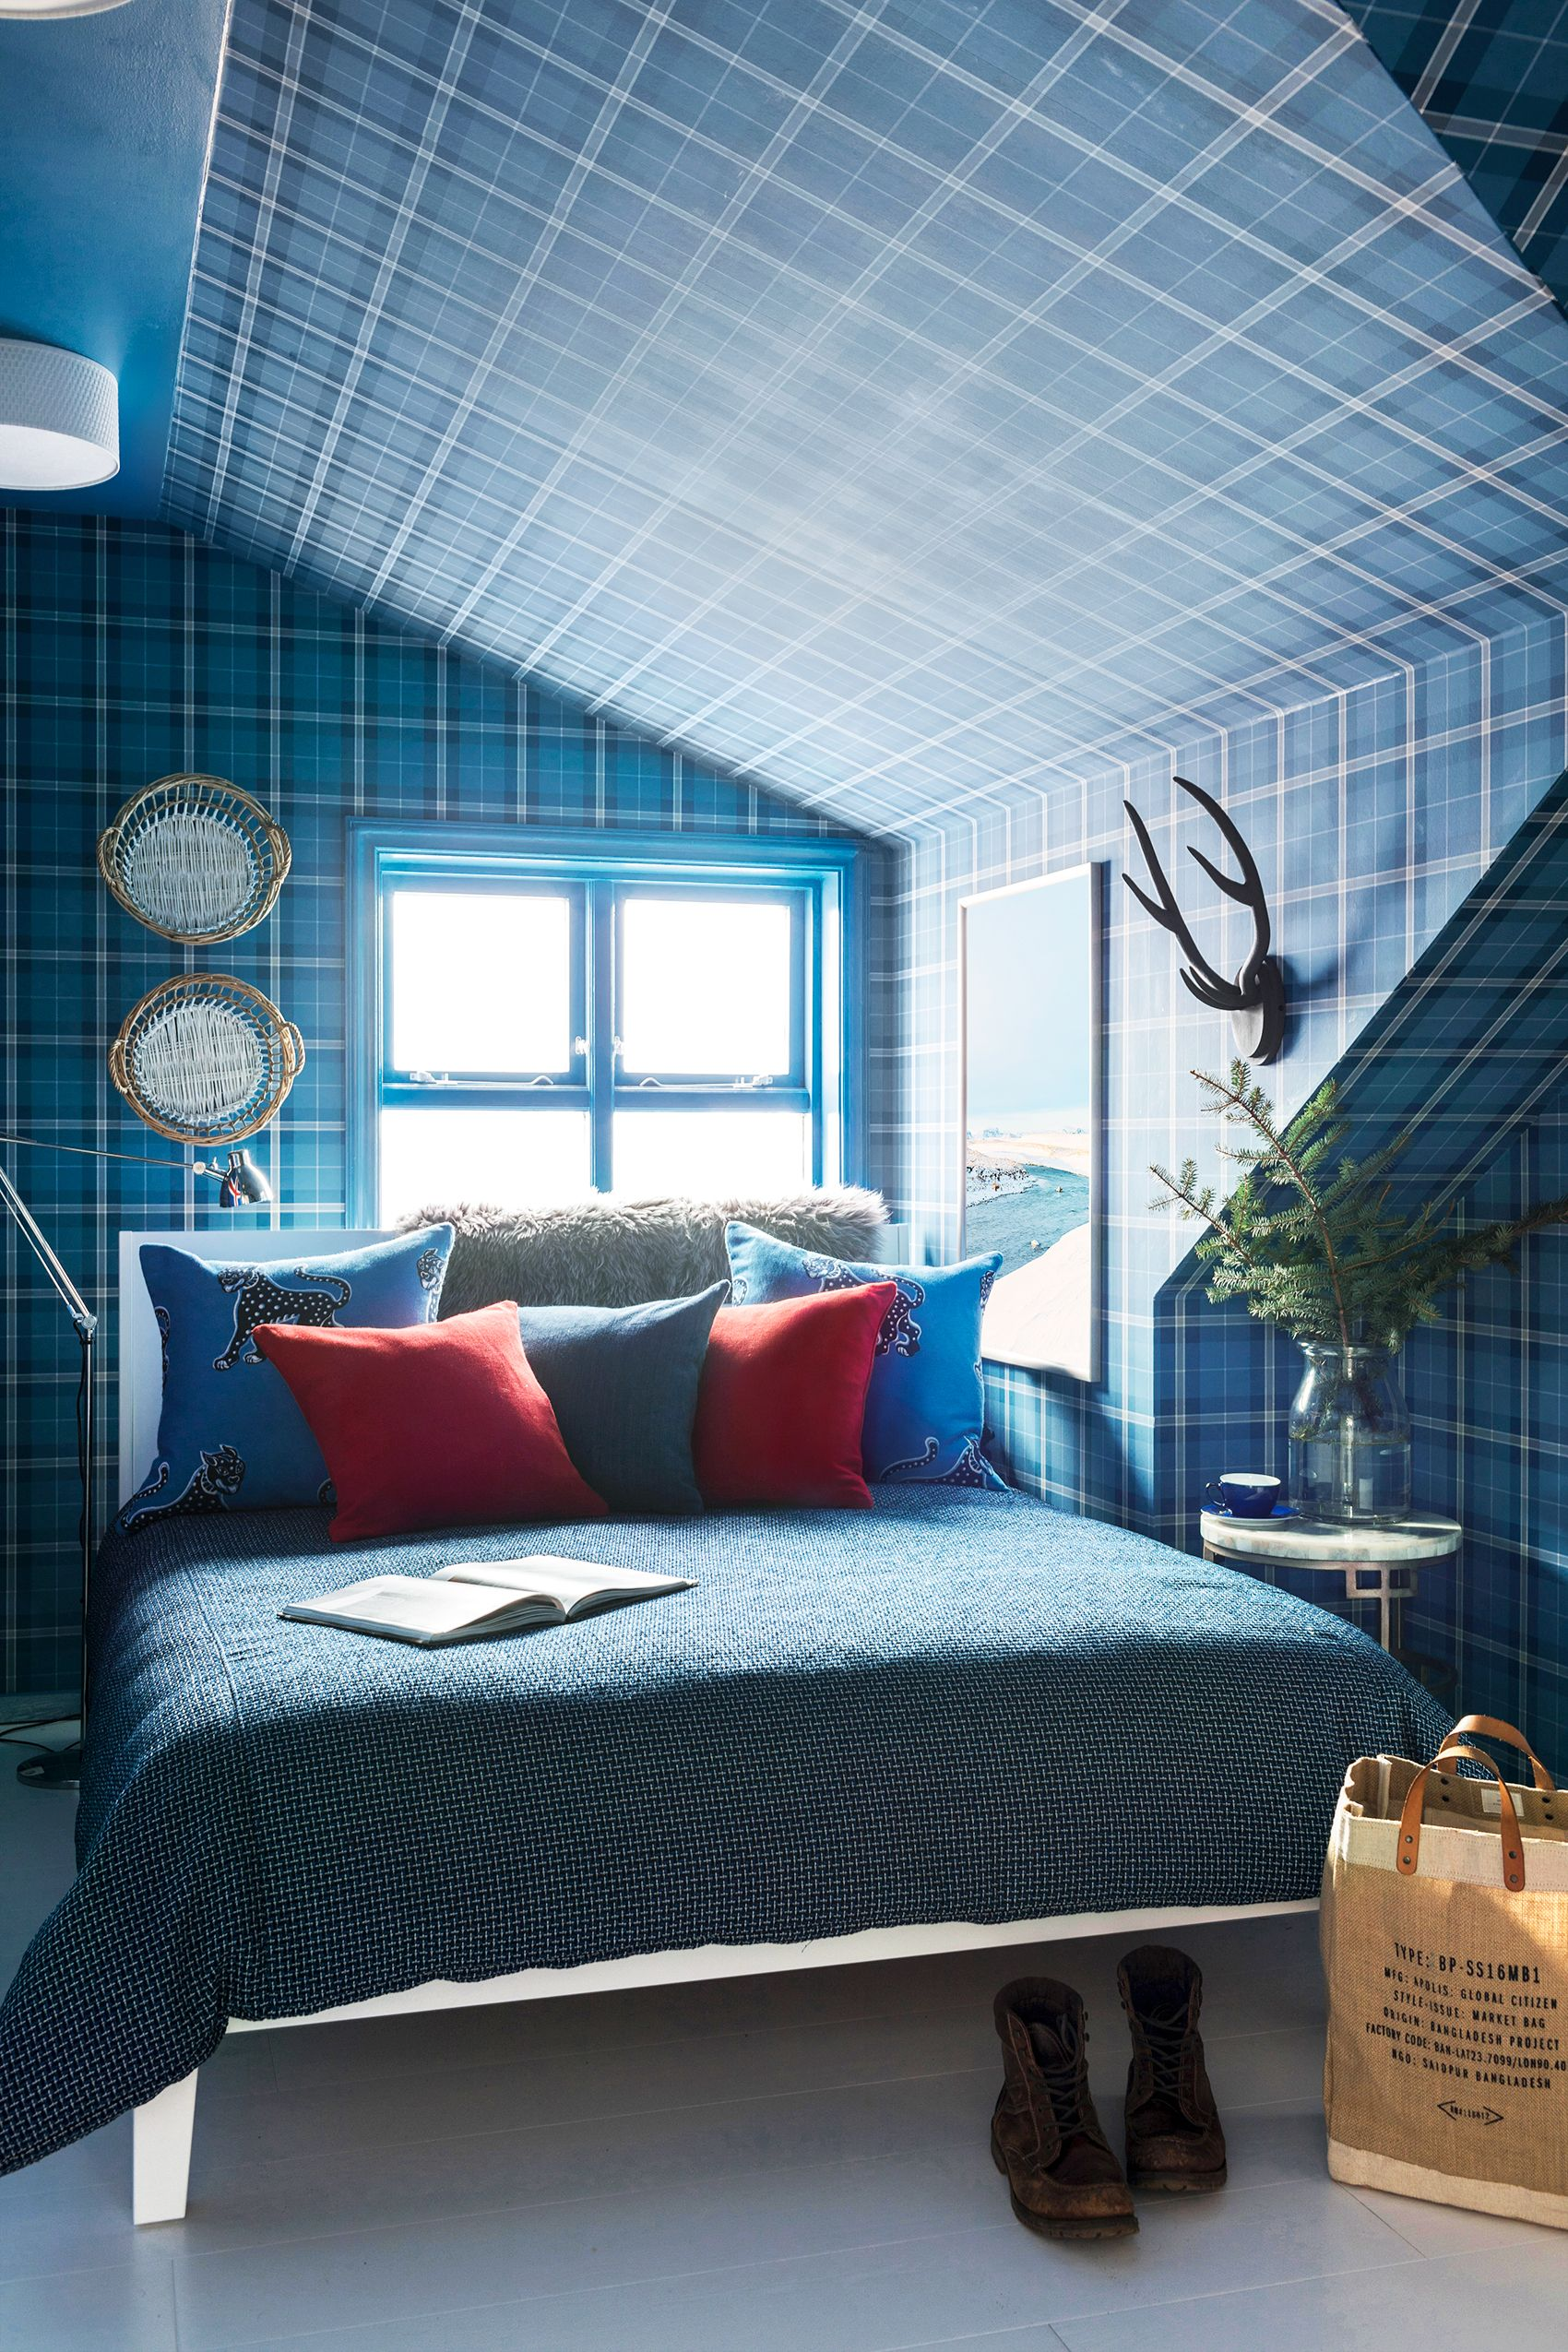 17 Beautiful Blue Bedroom Ideas 2021 How To Design A